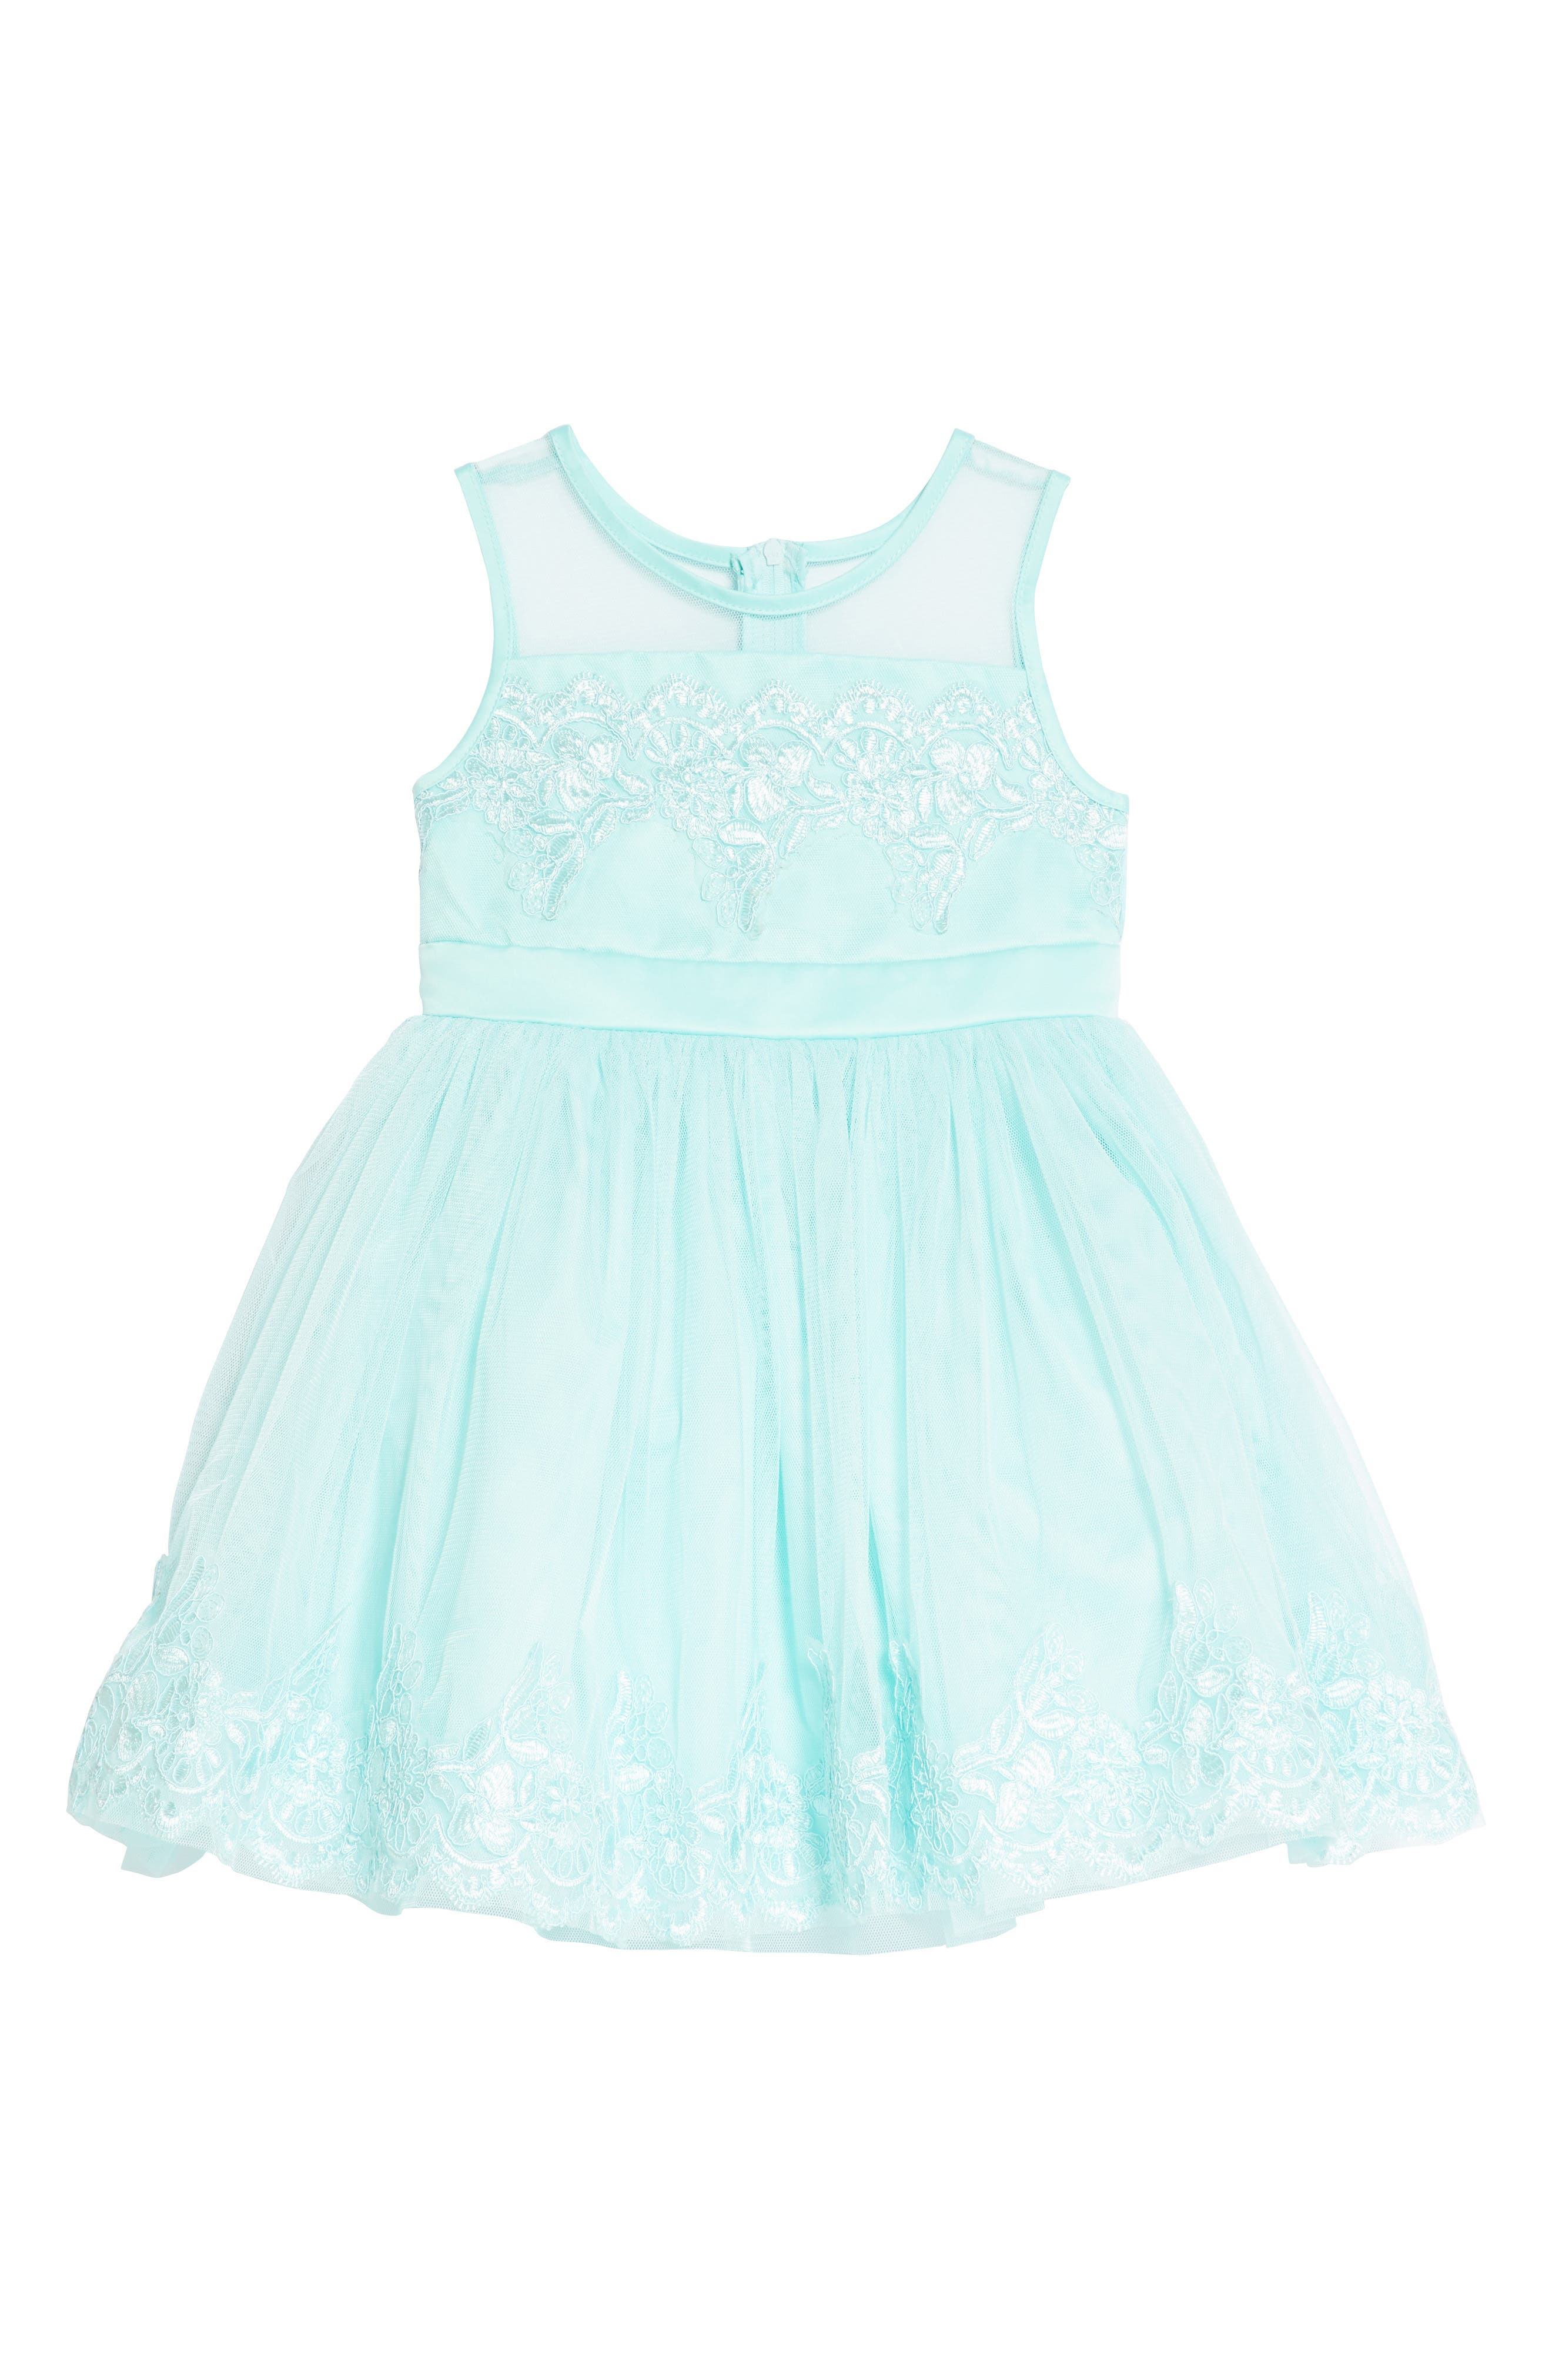 Nanette Lepore Tulle & Lace Party Dress (Toddler Girls)